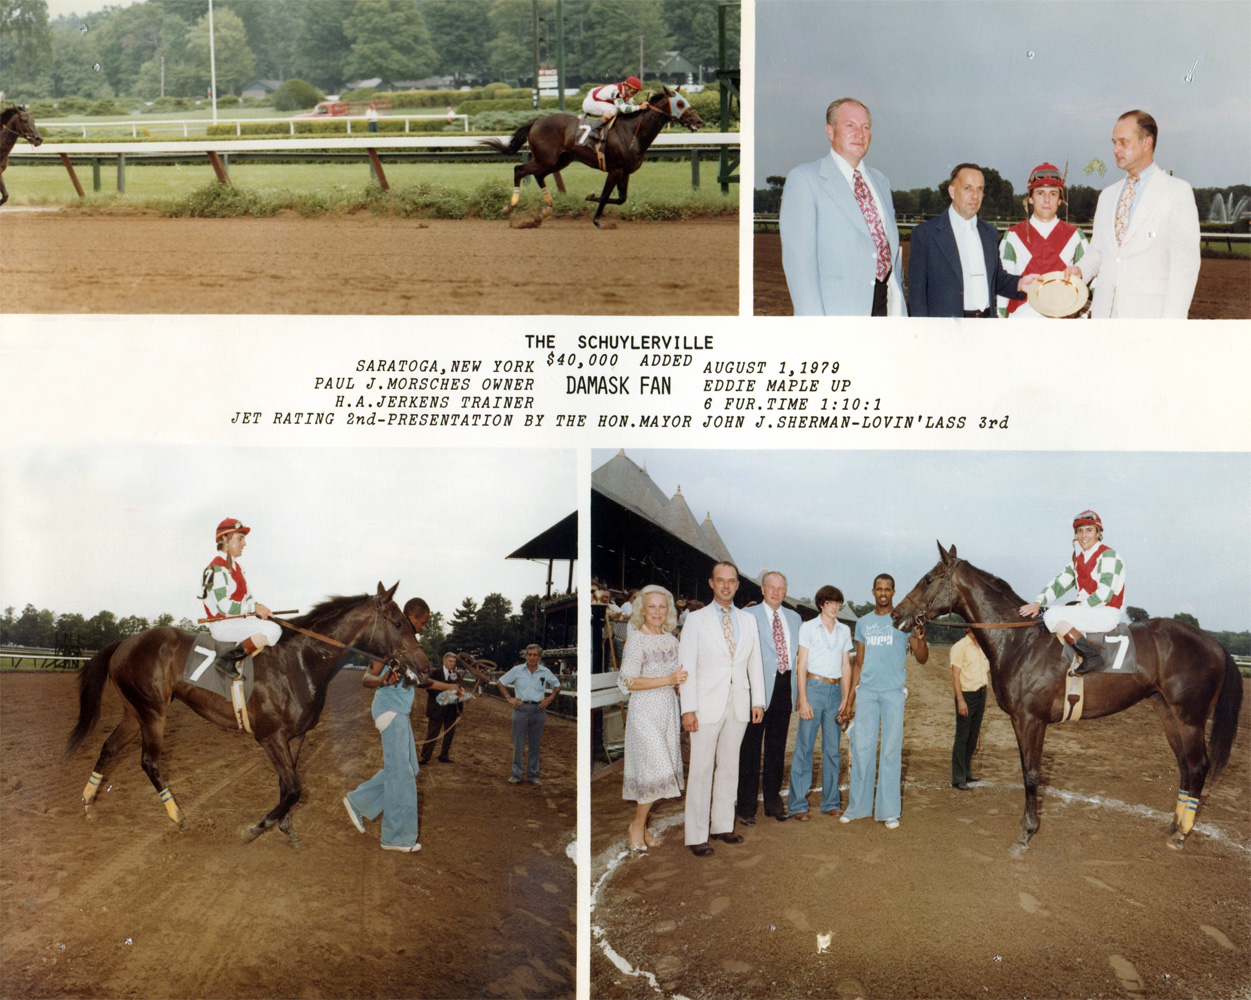 Win composite from the 1979 Schuylerville Stakes at Saratoga, won by Eddie Maple and Damask Fan (NYRA/Museum Collection)